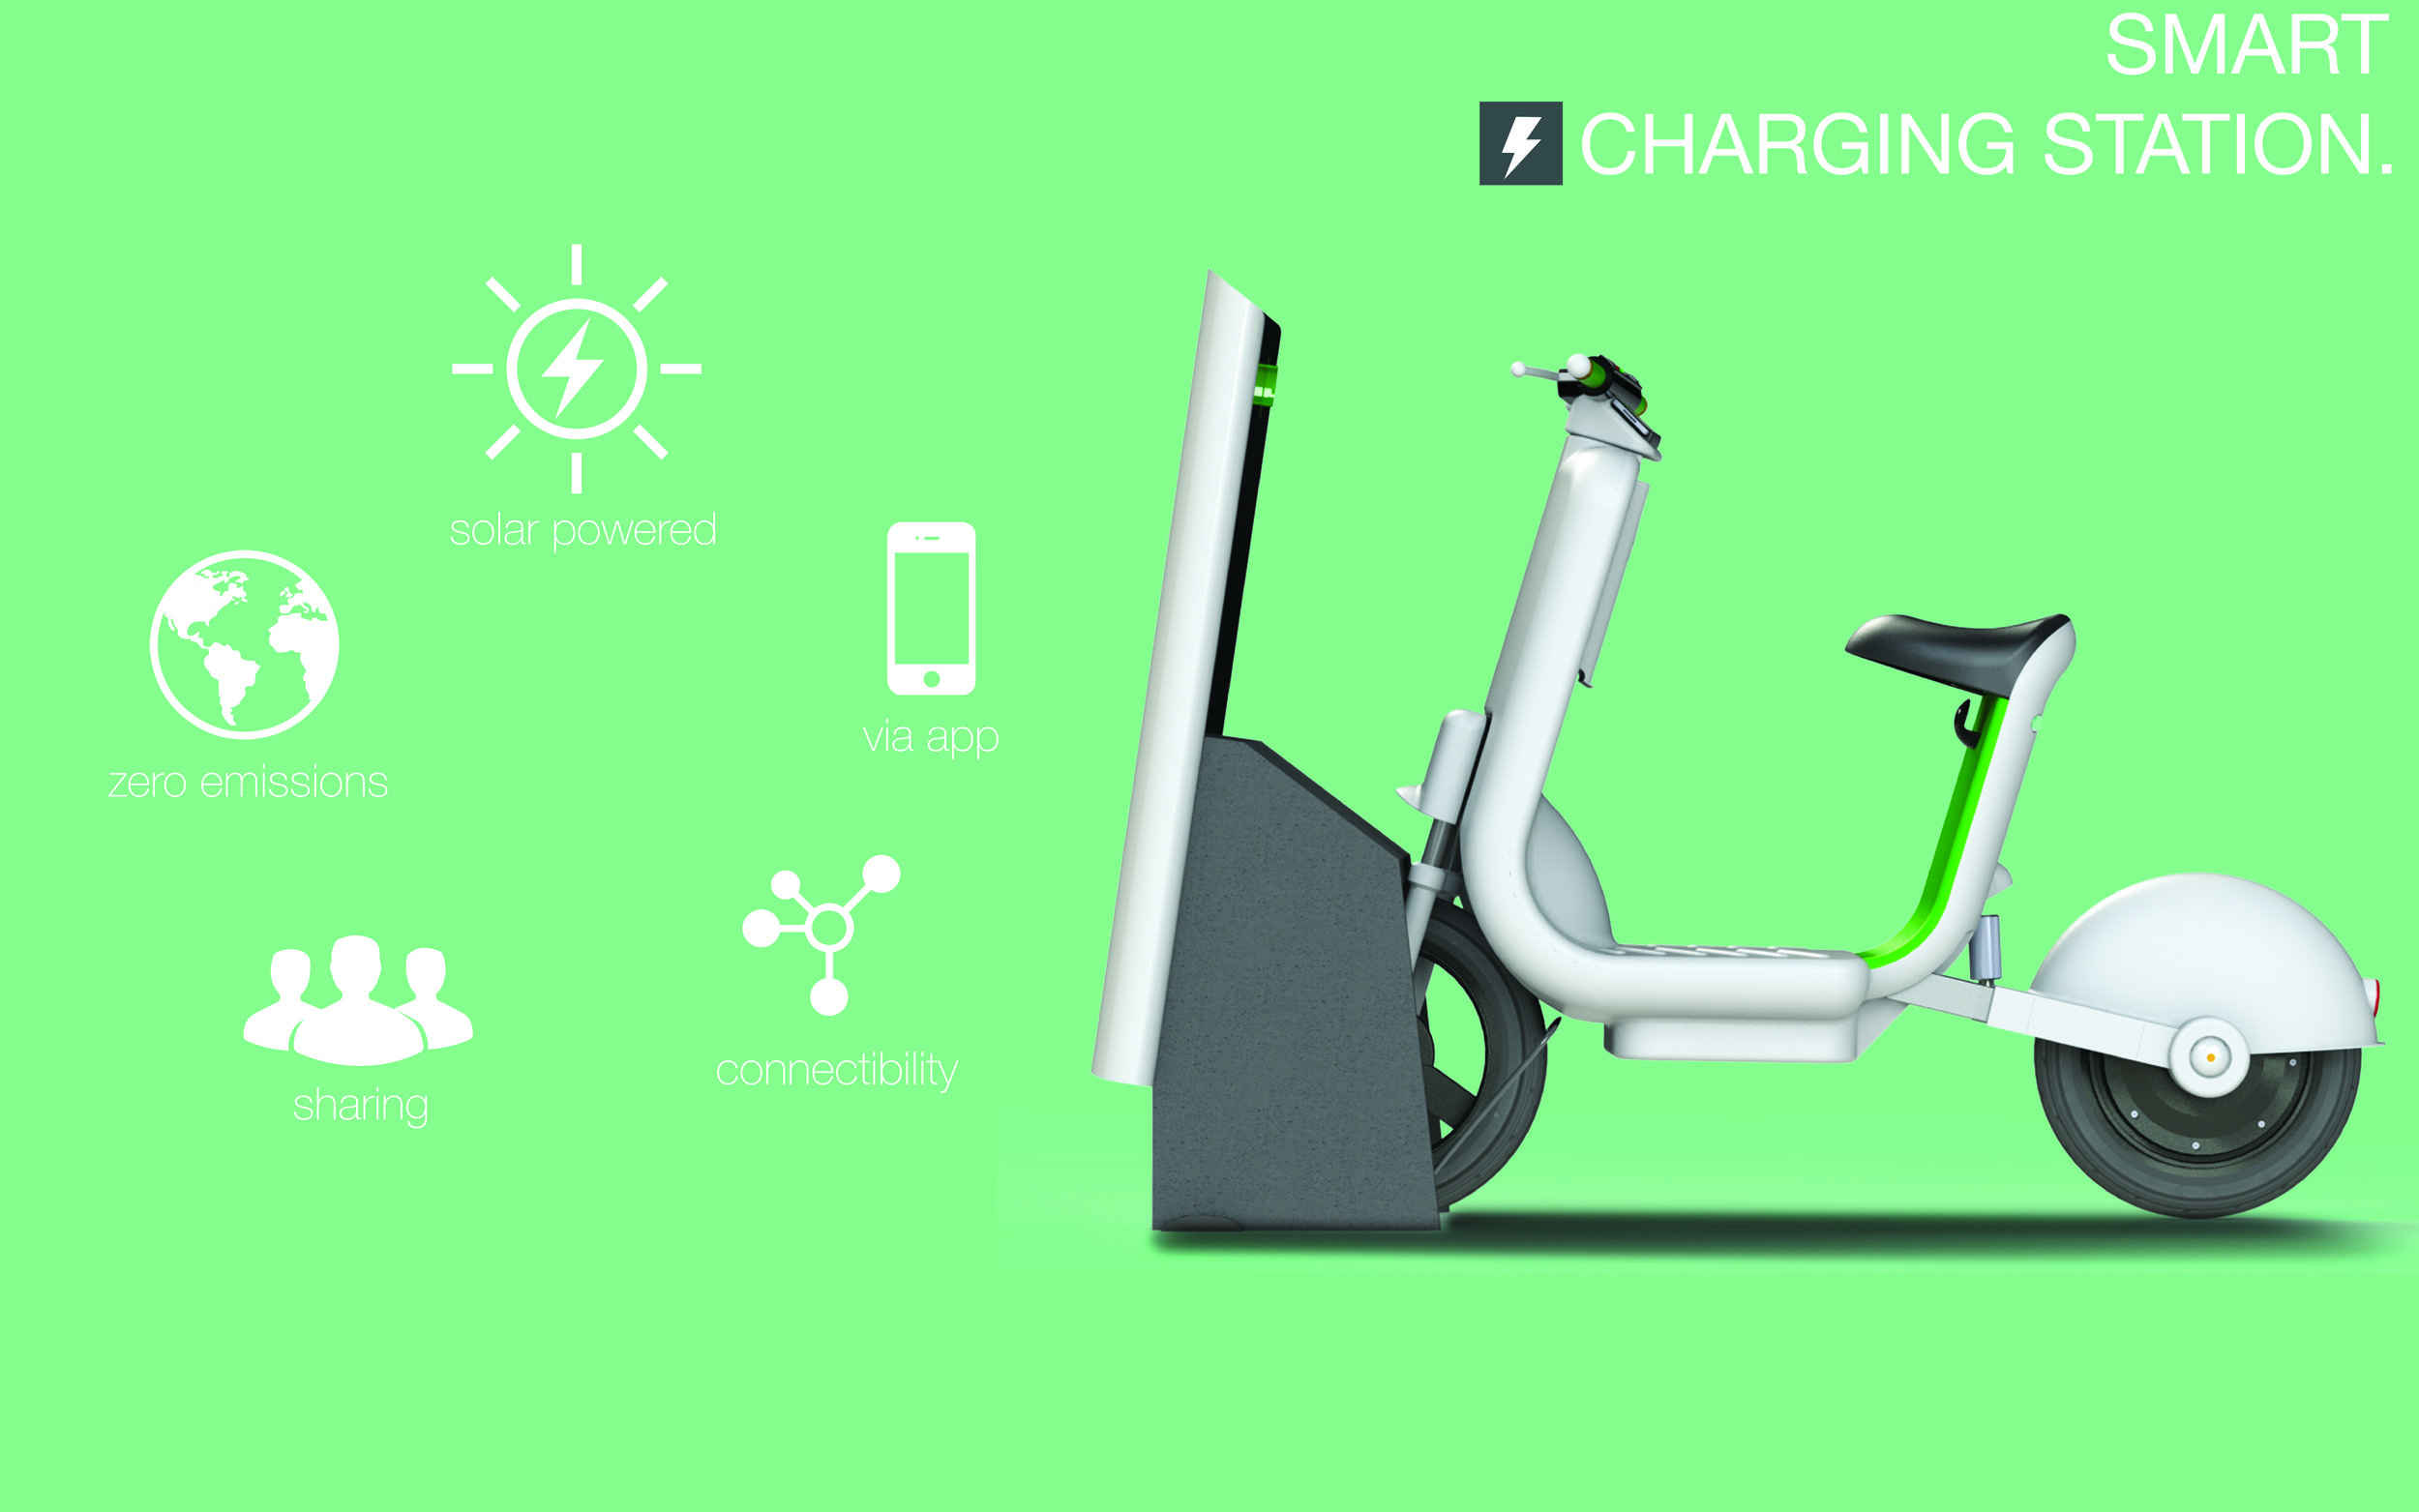 Electric scooter charging station